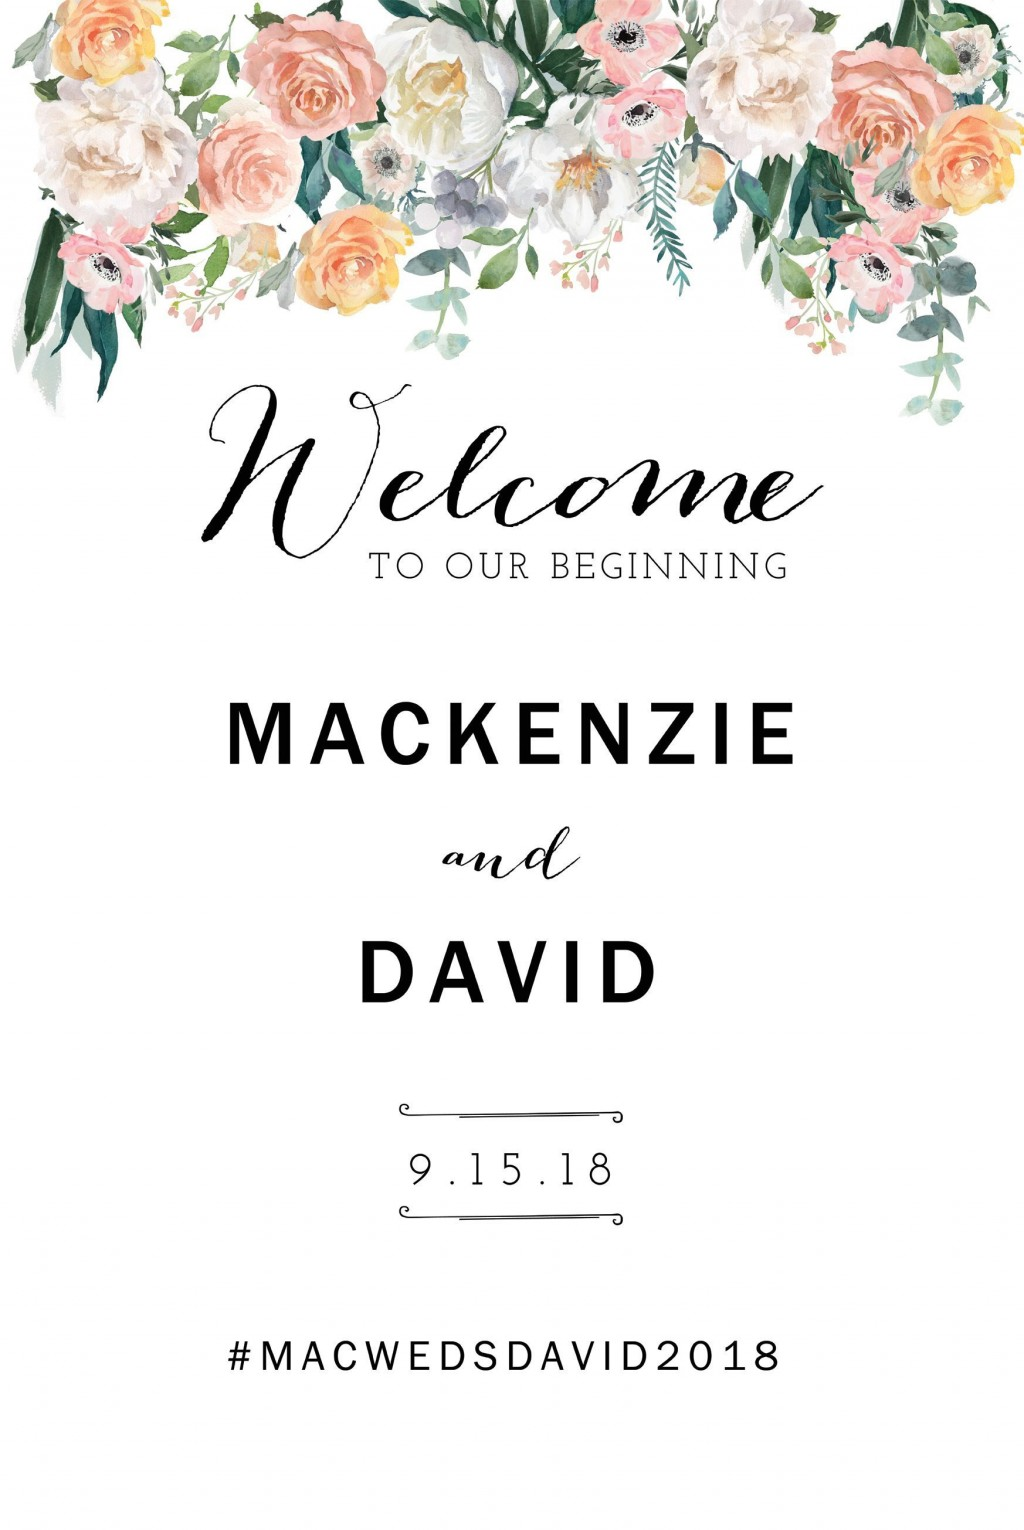 001 Unusual Wedding Welcome Sign Printable Template Design  FreeLarge